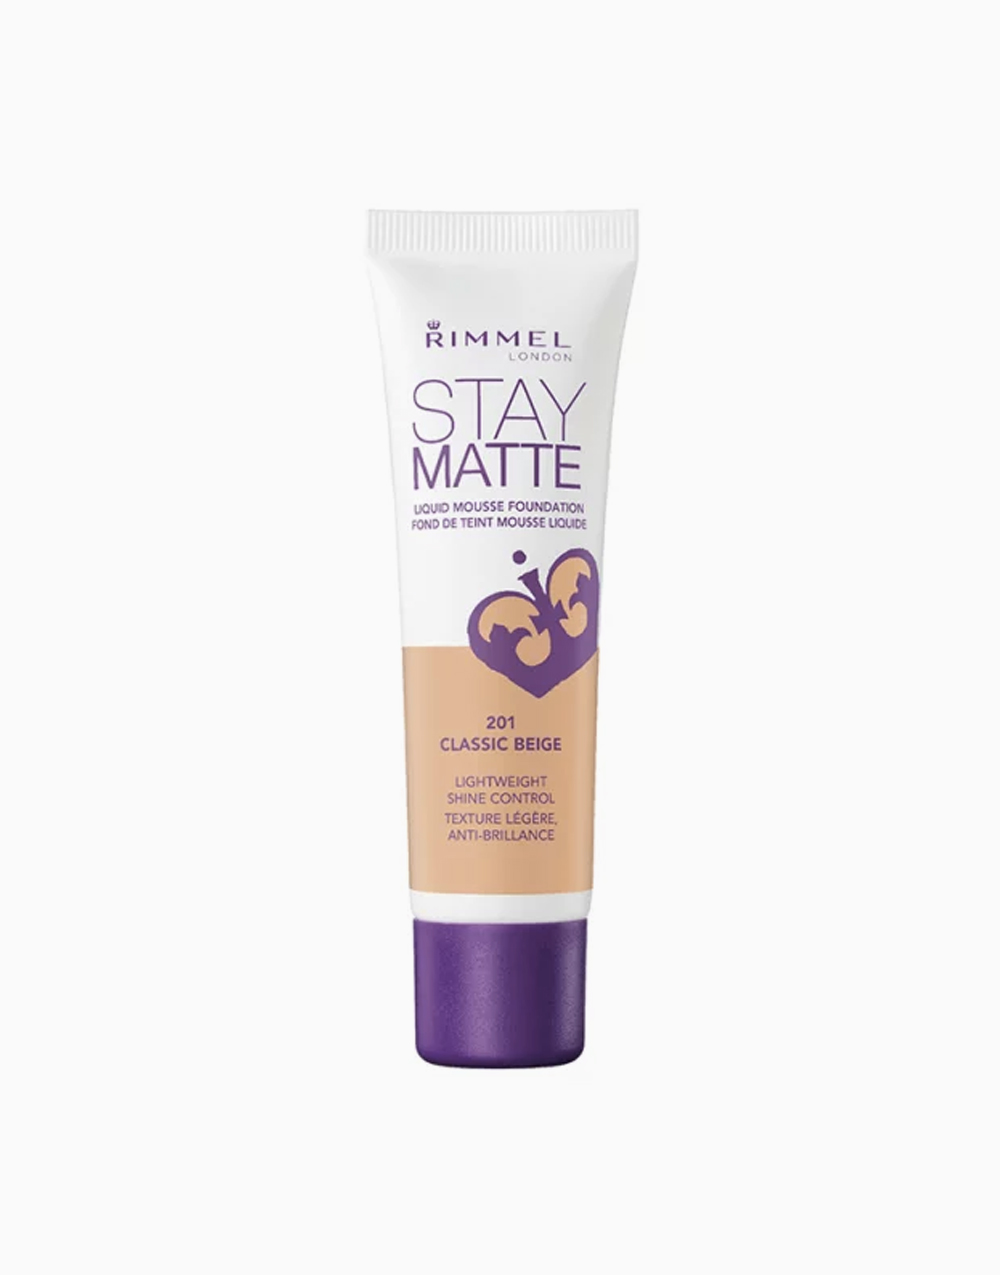 Stay Matte Mousse Foundation by Rimmel | Classic Beige